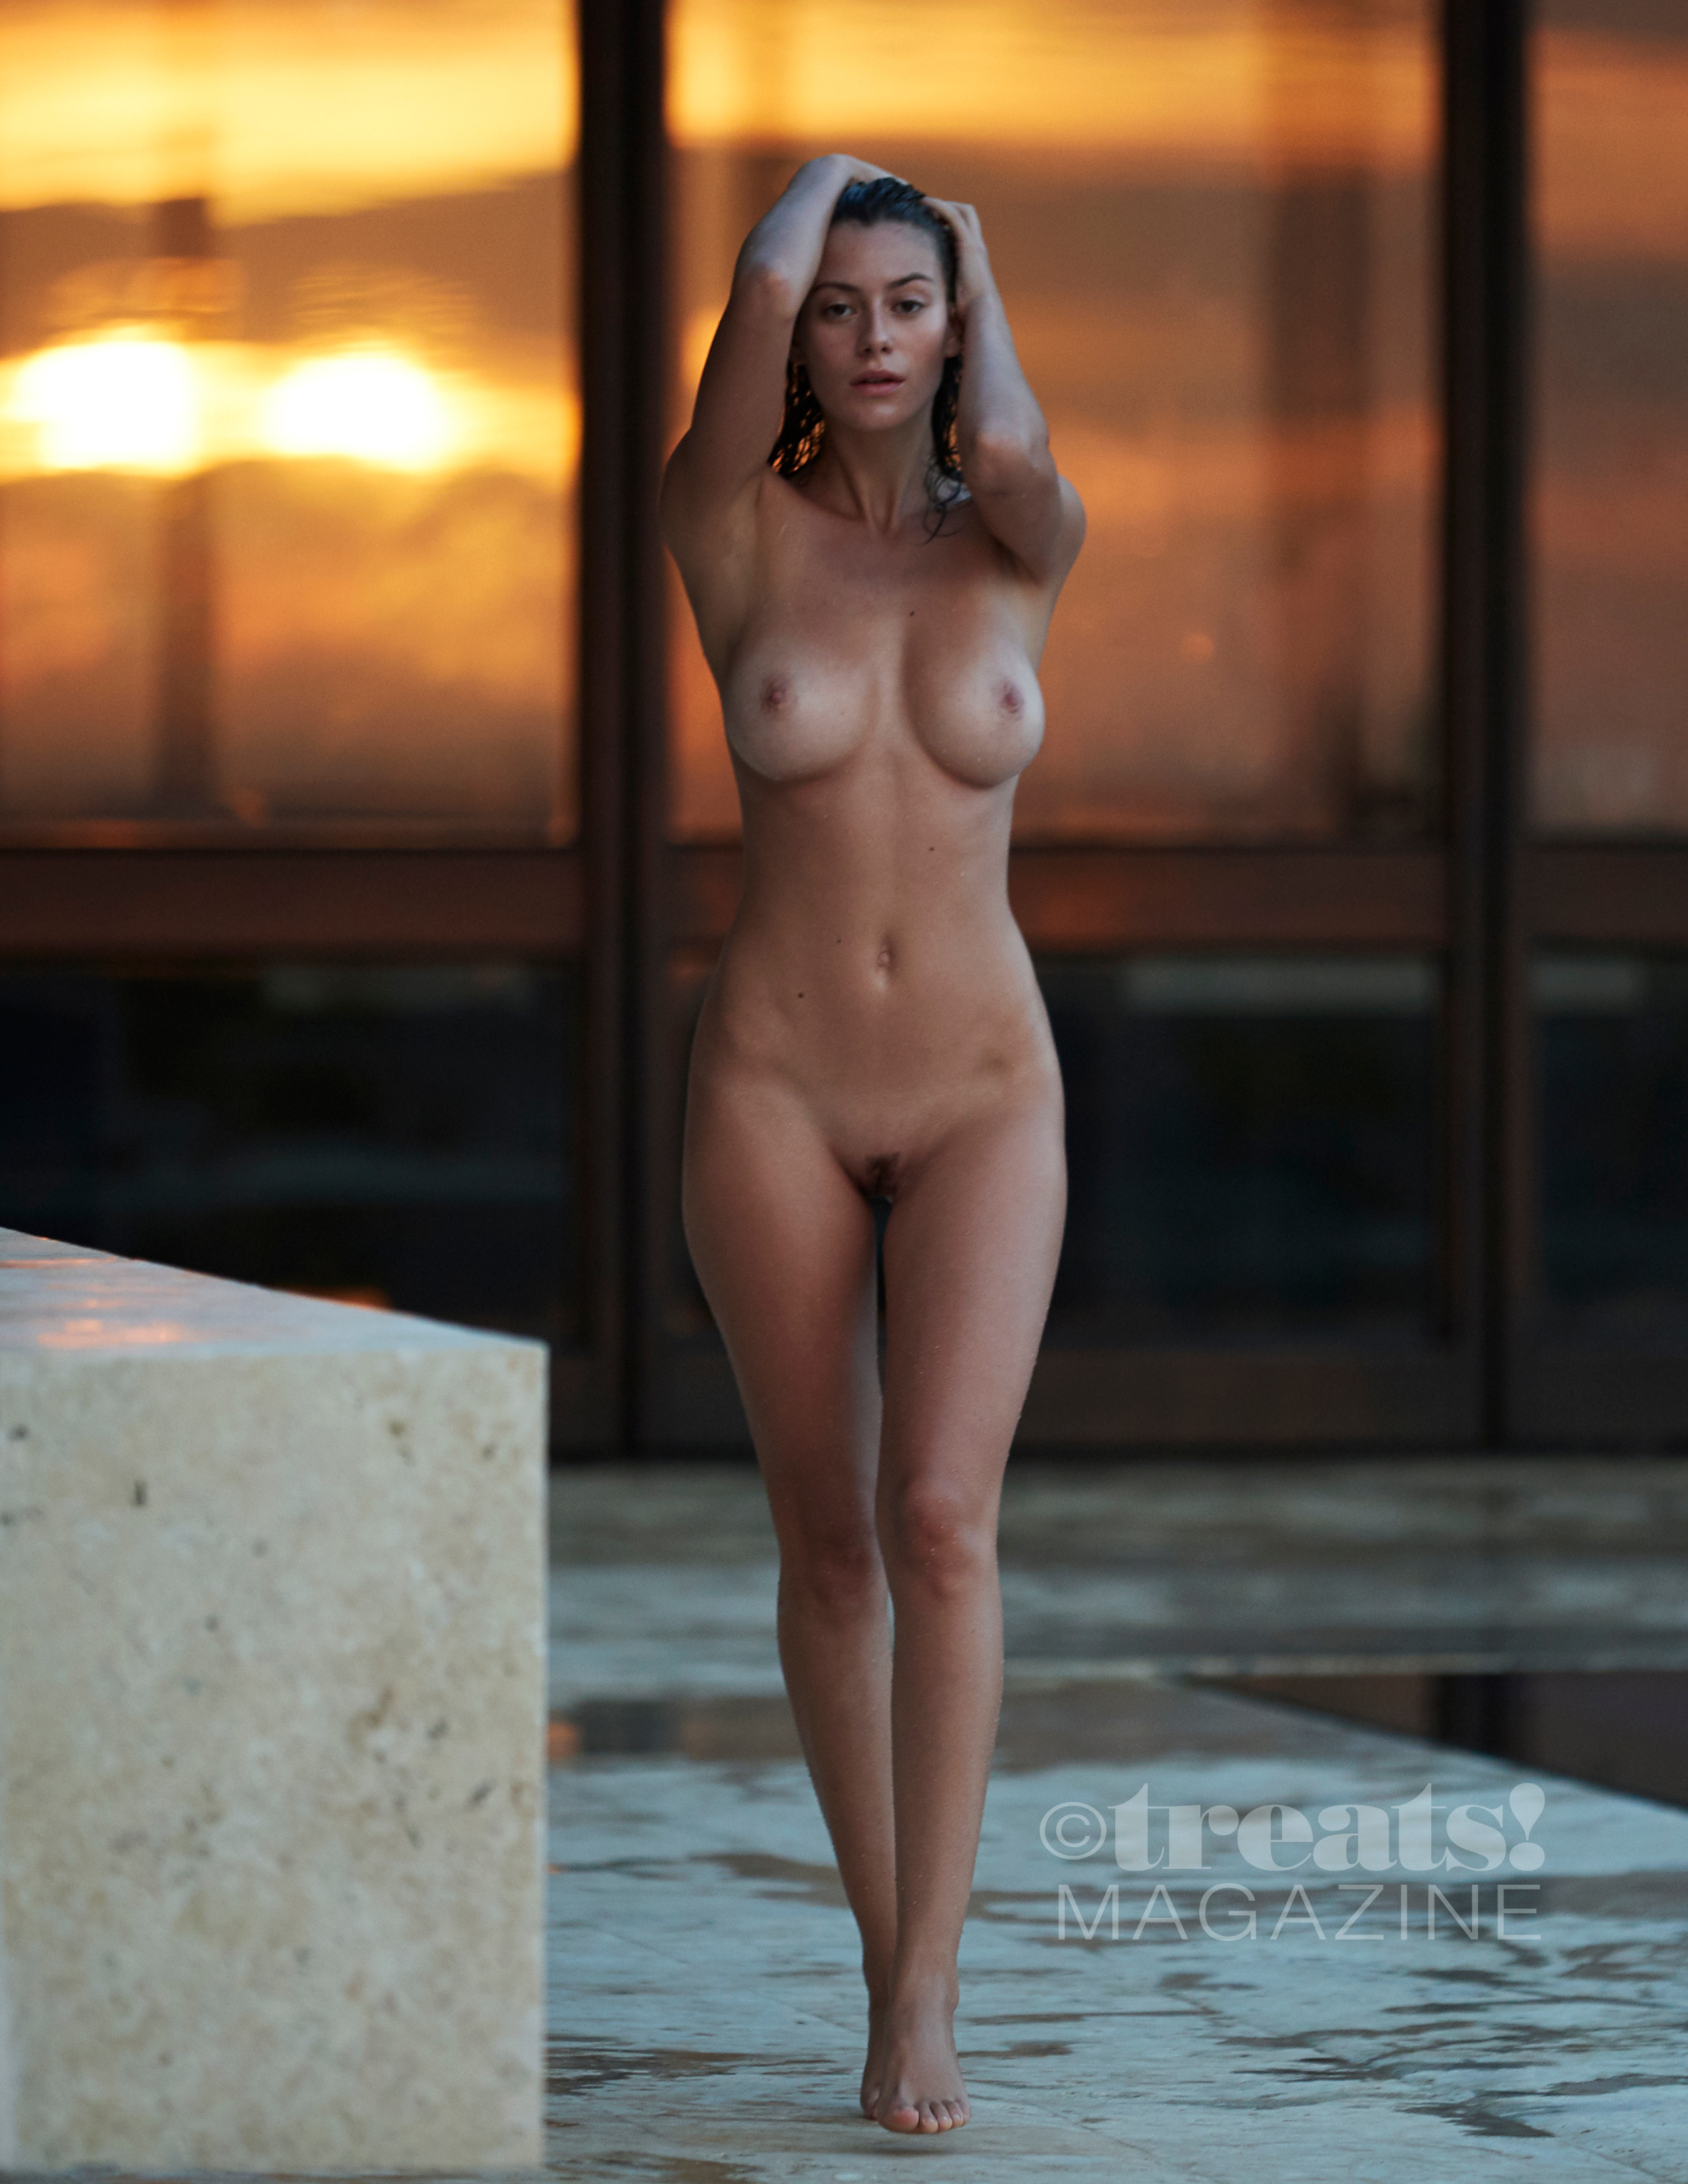 alejandra-guilmant-perfect-nude-body-erotic-treats-magazine-by-david-bellemere-39